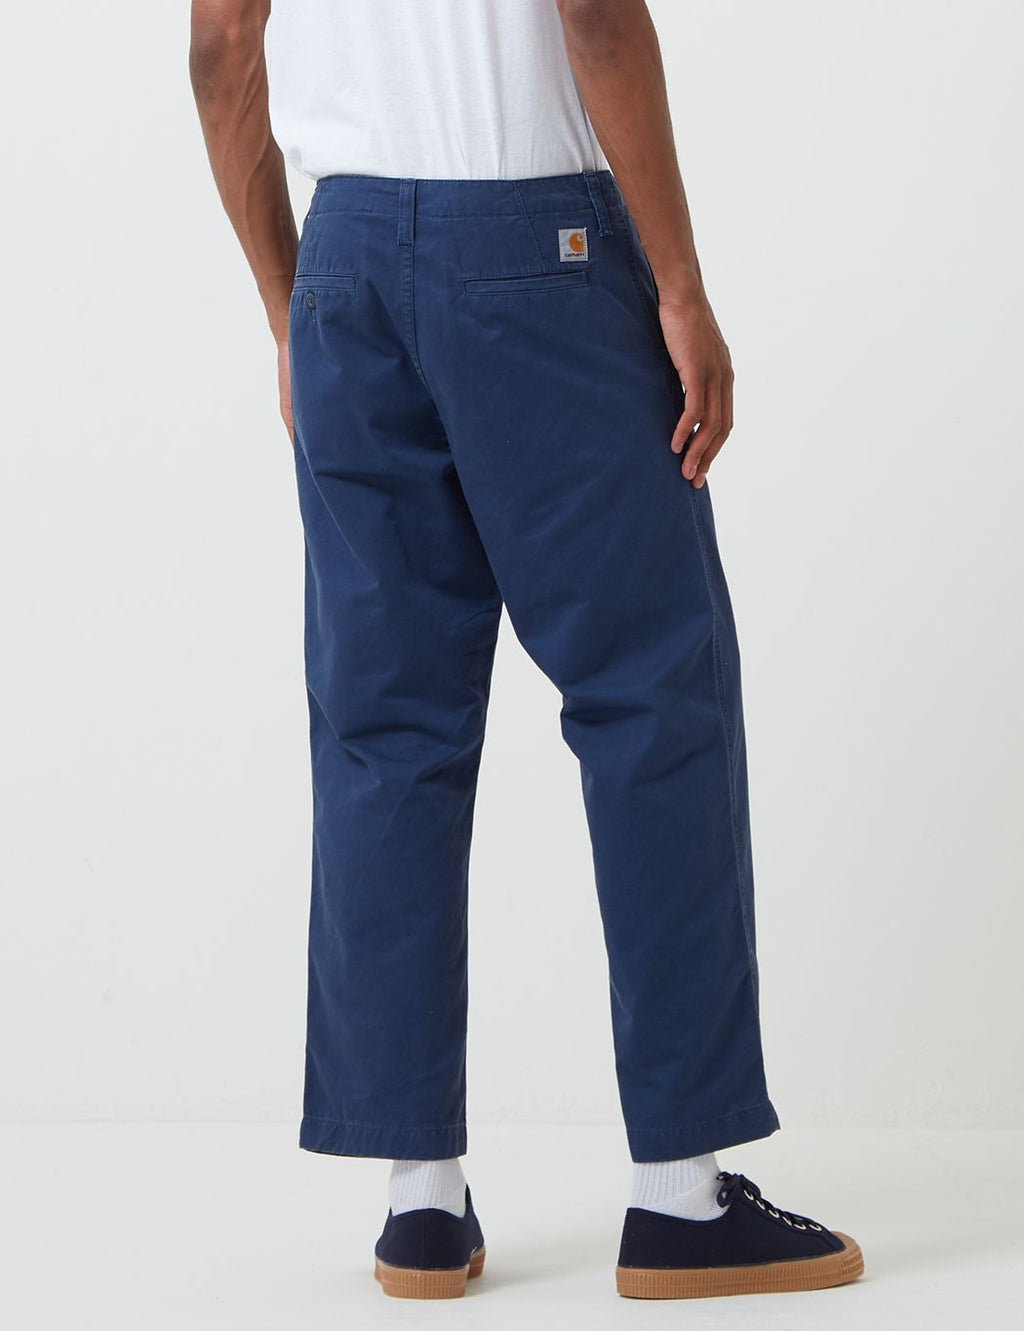 W31 L32 Val Blue Stone Washed Trousers Carhartt Fatigue Pant